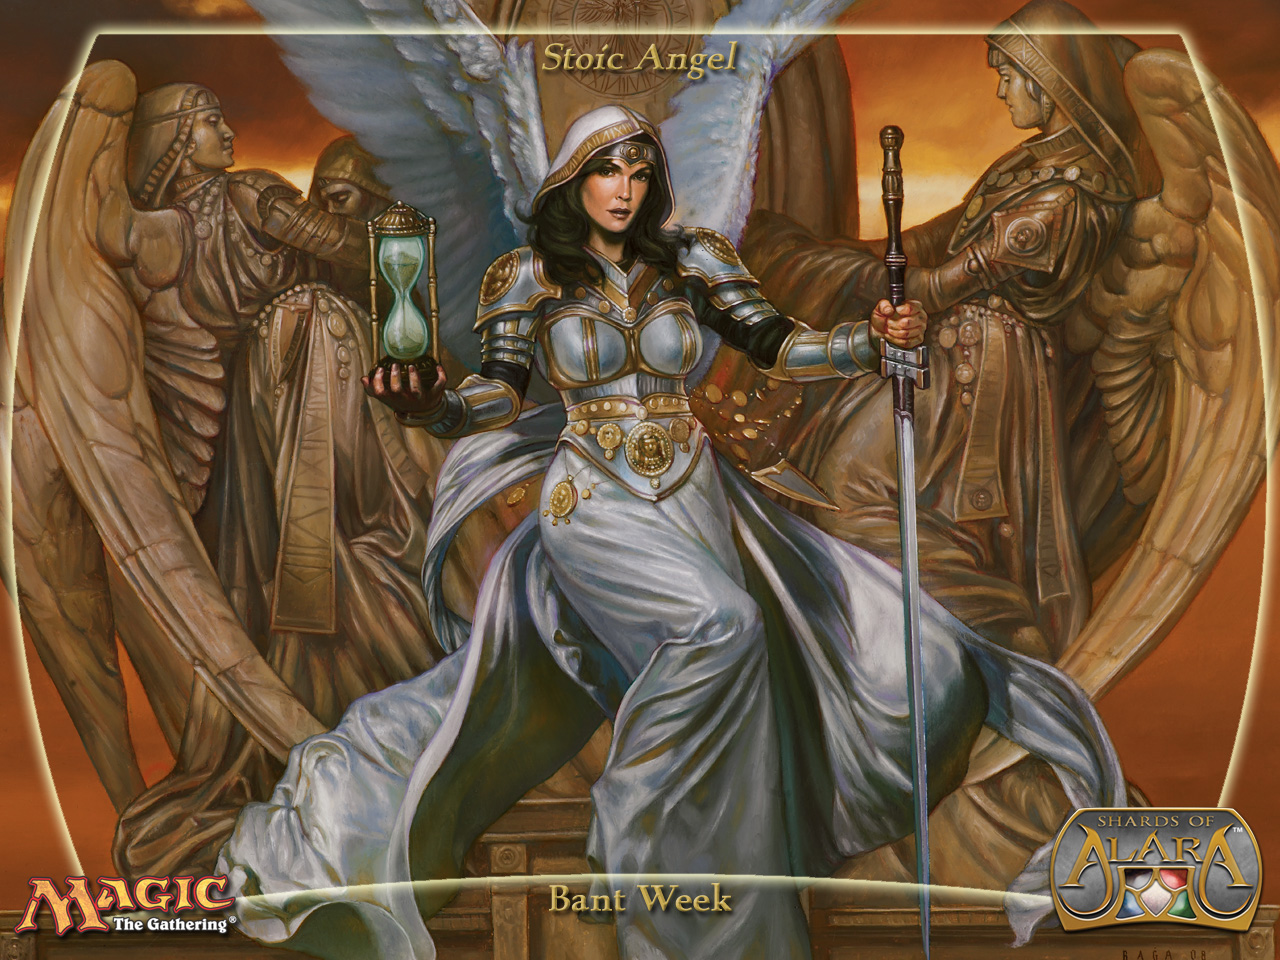 Free Download Wallpaper Of The Week Stoic Angel Daily Mtg Magic